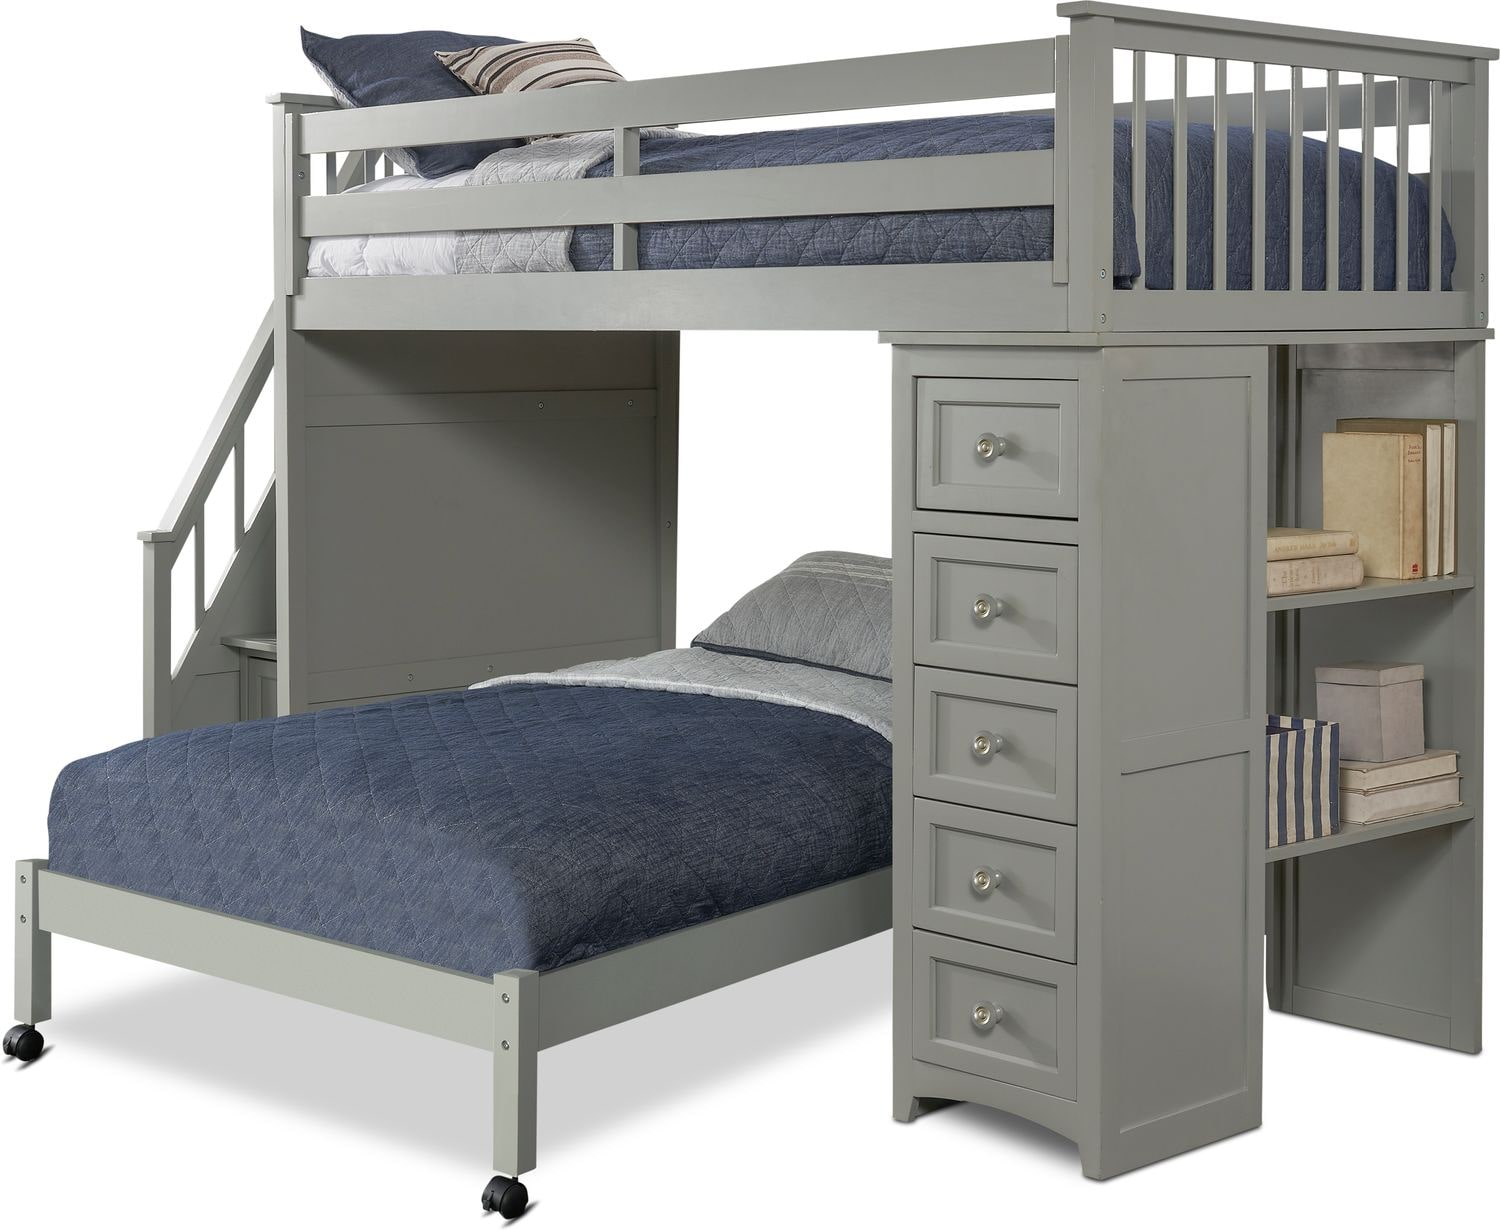 Loft Bed Stairs Cheaper Than Retail Price Buy Clothing Accessories And Lifestyle Products For Women Men